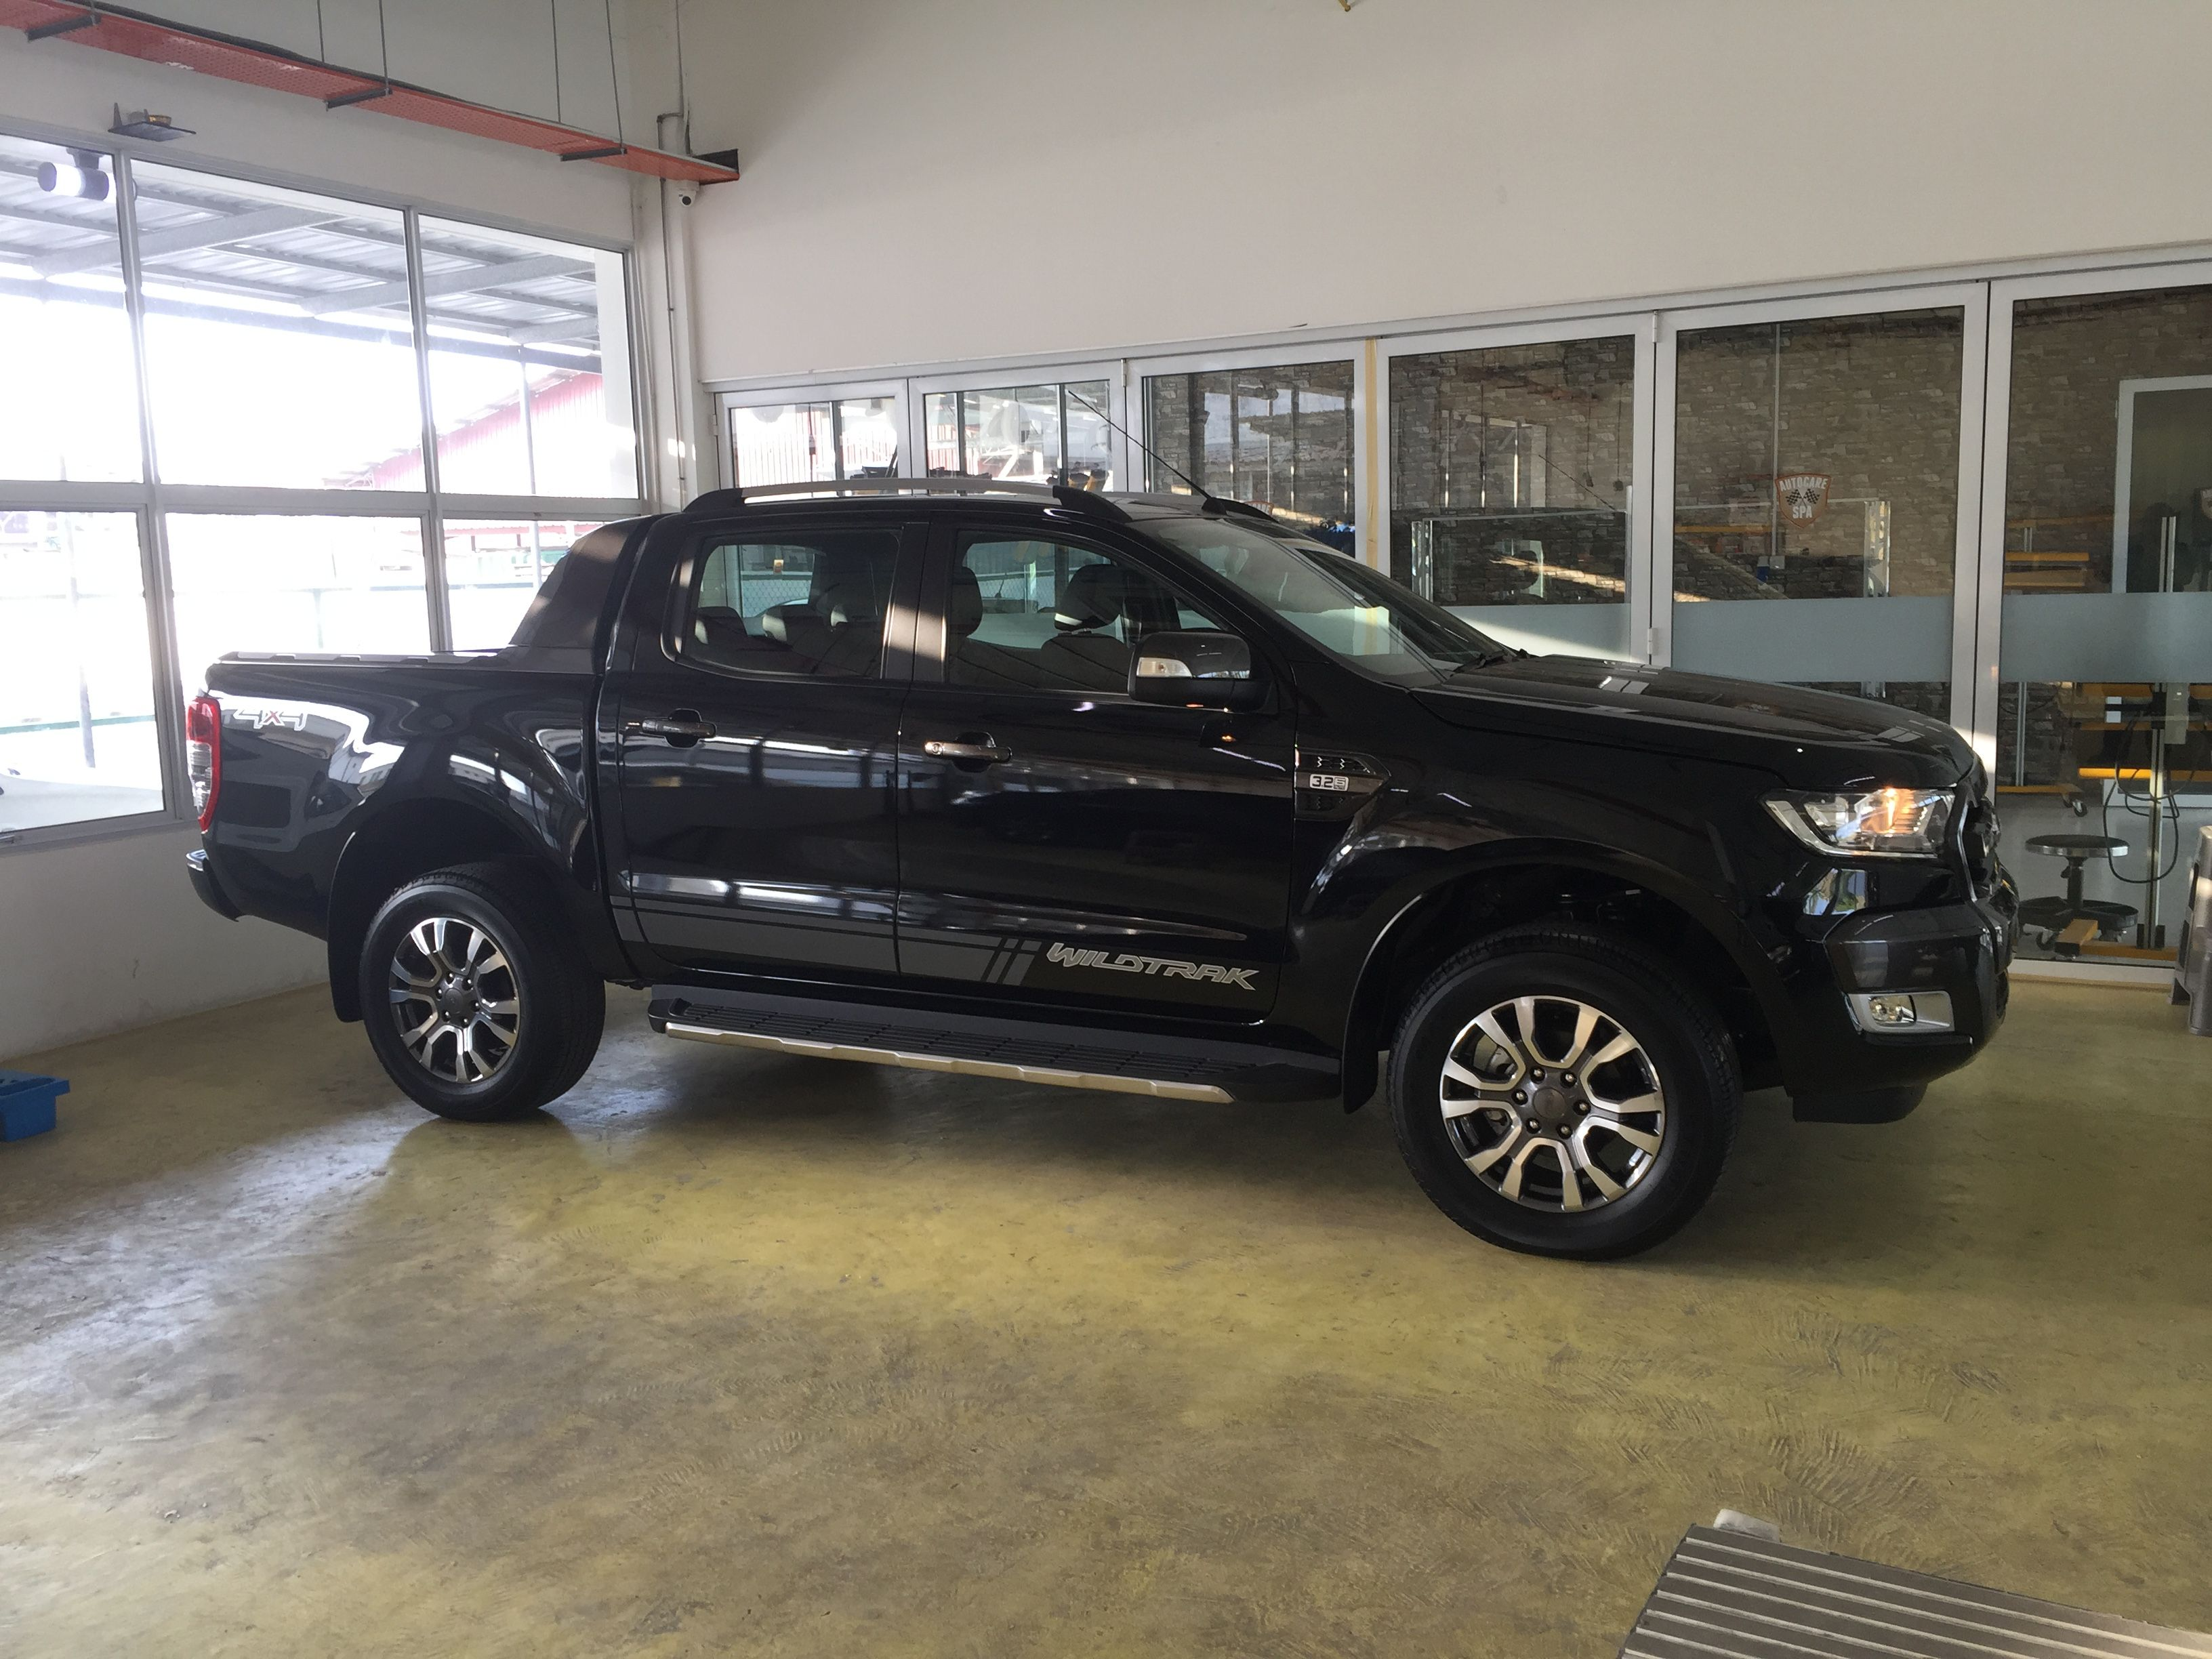 Ford Ranger Wildtrak Limited Edition Jet Black